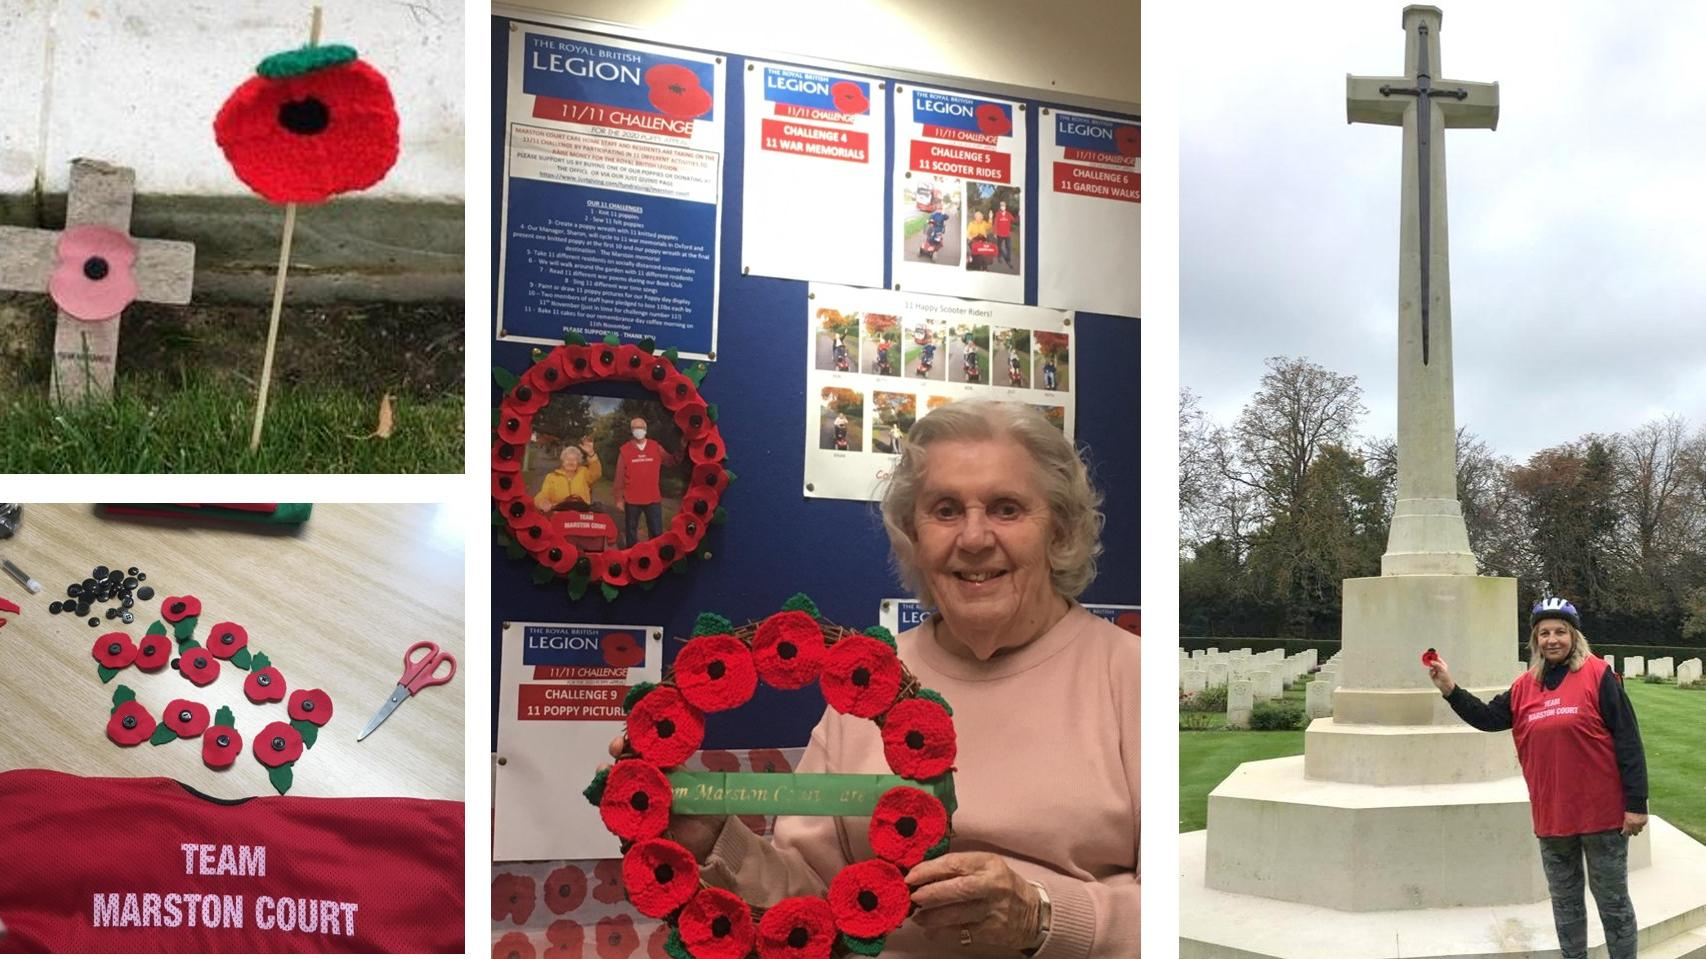 Poppy challenge at Marston Court